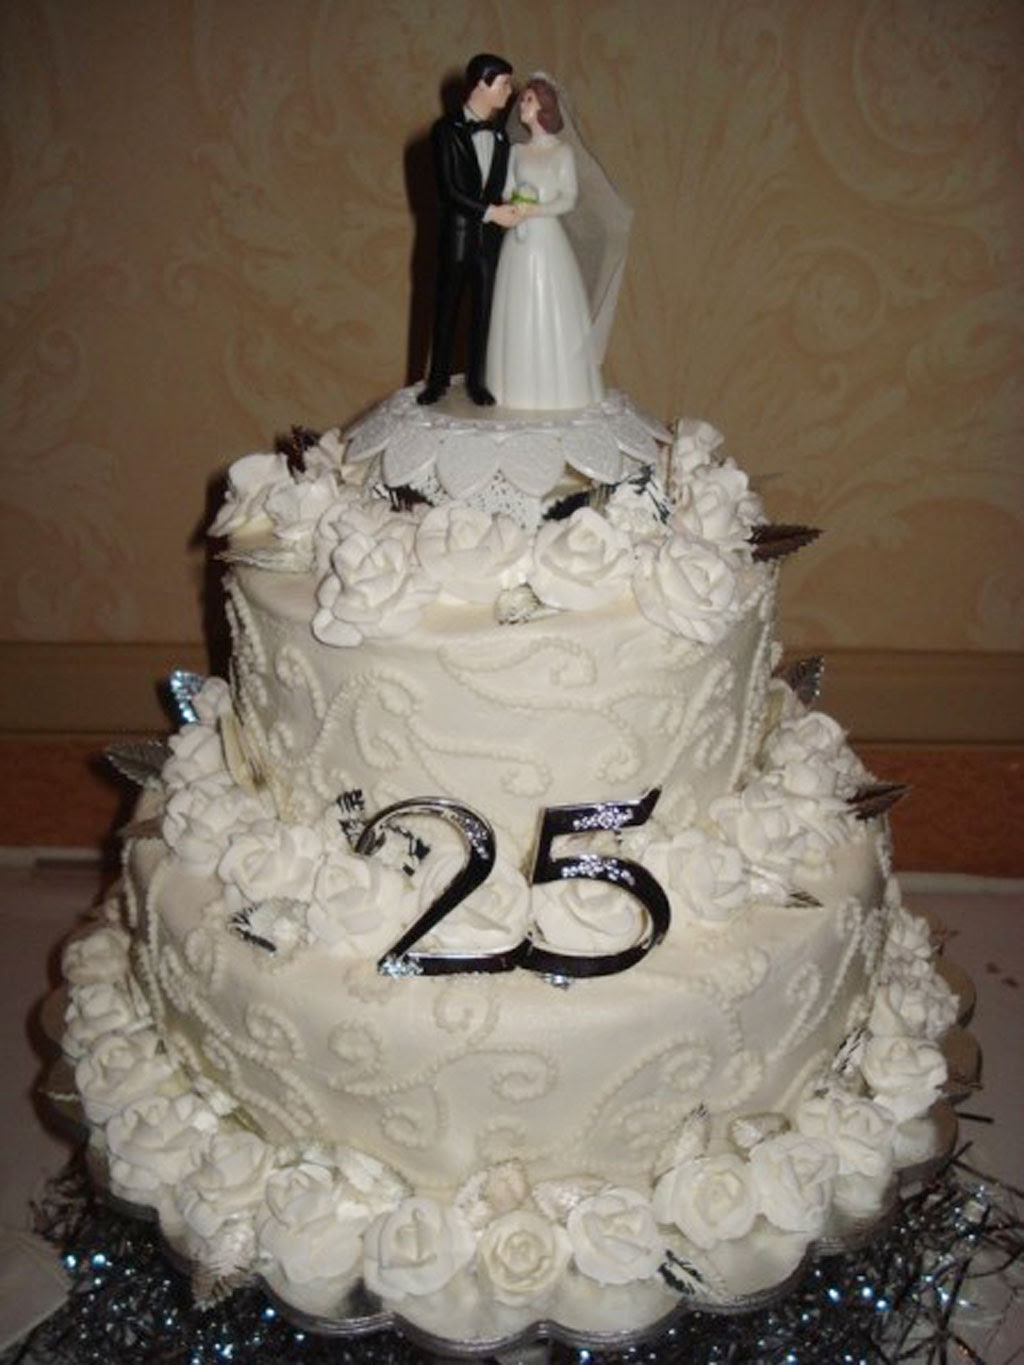 Happy 25th Anniversary Cake Images Top Colection For Greeting And